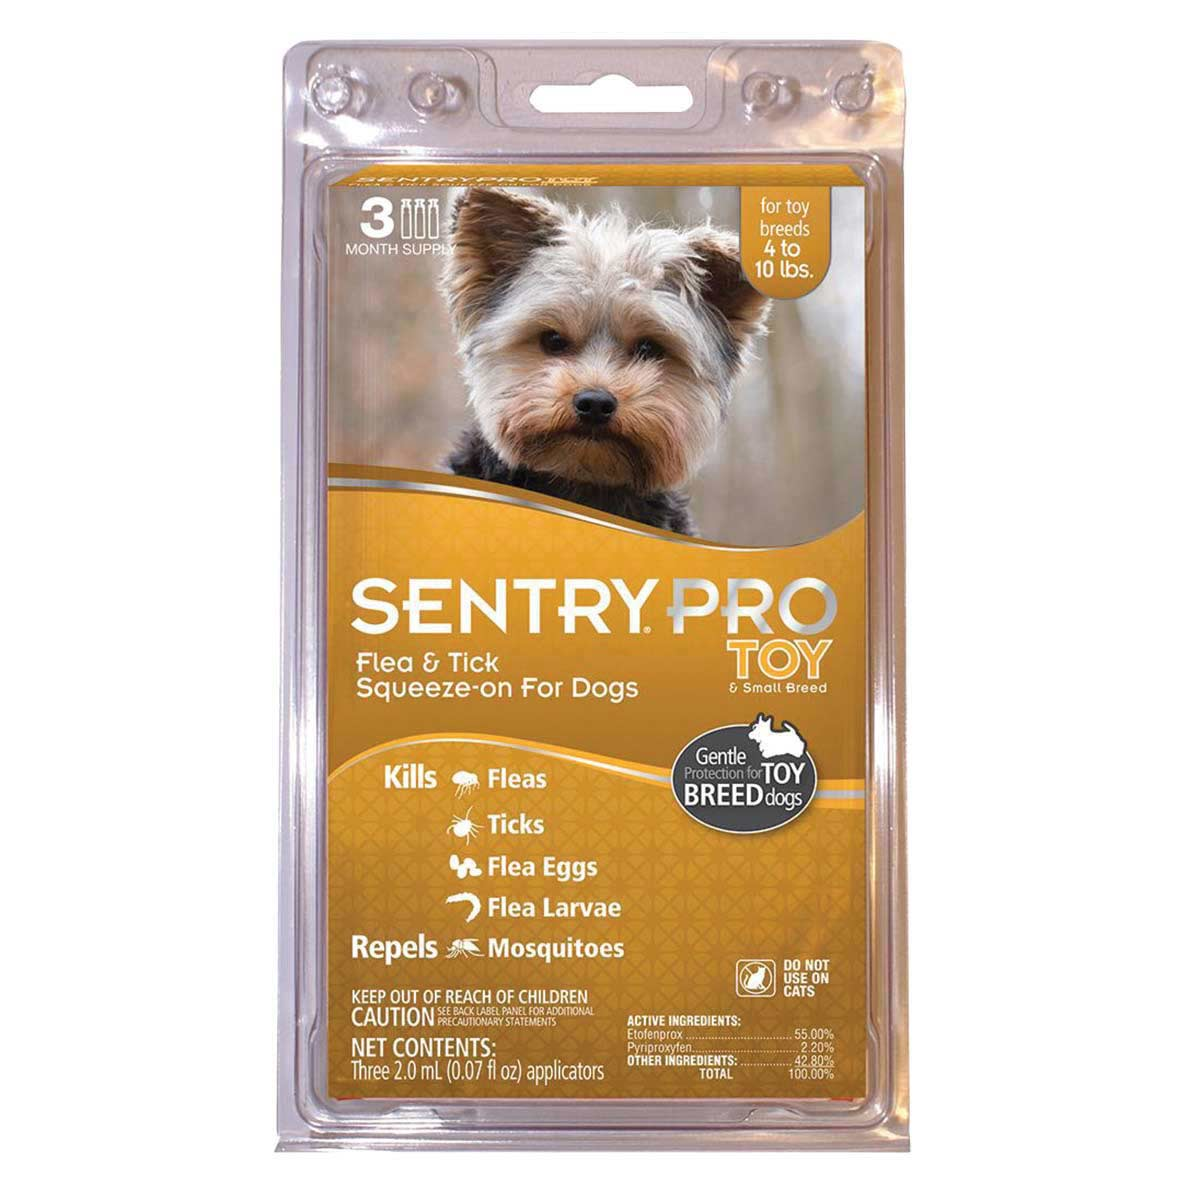 SentryPro XFT Flea and Tick Treatment for Toy Breed Dogs 4-20 lbs